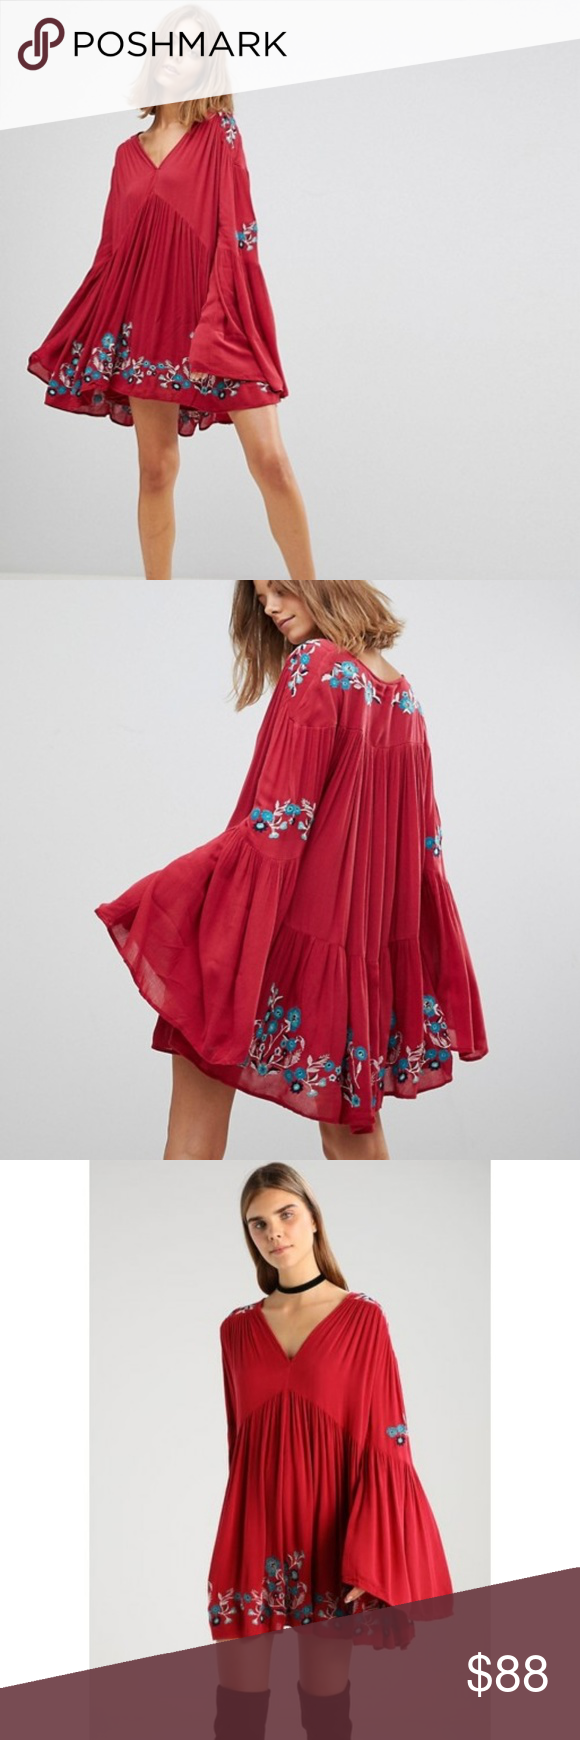 8f8b006f8aa3 *Sale* NWT Free People Te Amo Dress Long sleeve mini dress featuring  beautiful floral embroidery, retro-inspired flared sleeves and an  effortless, ...